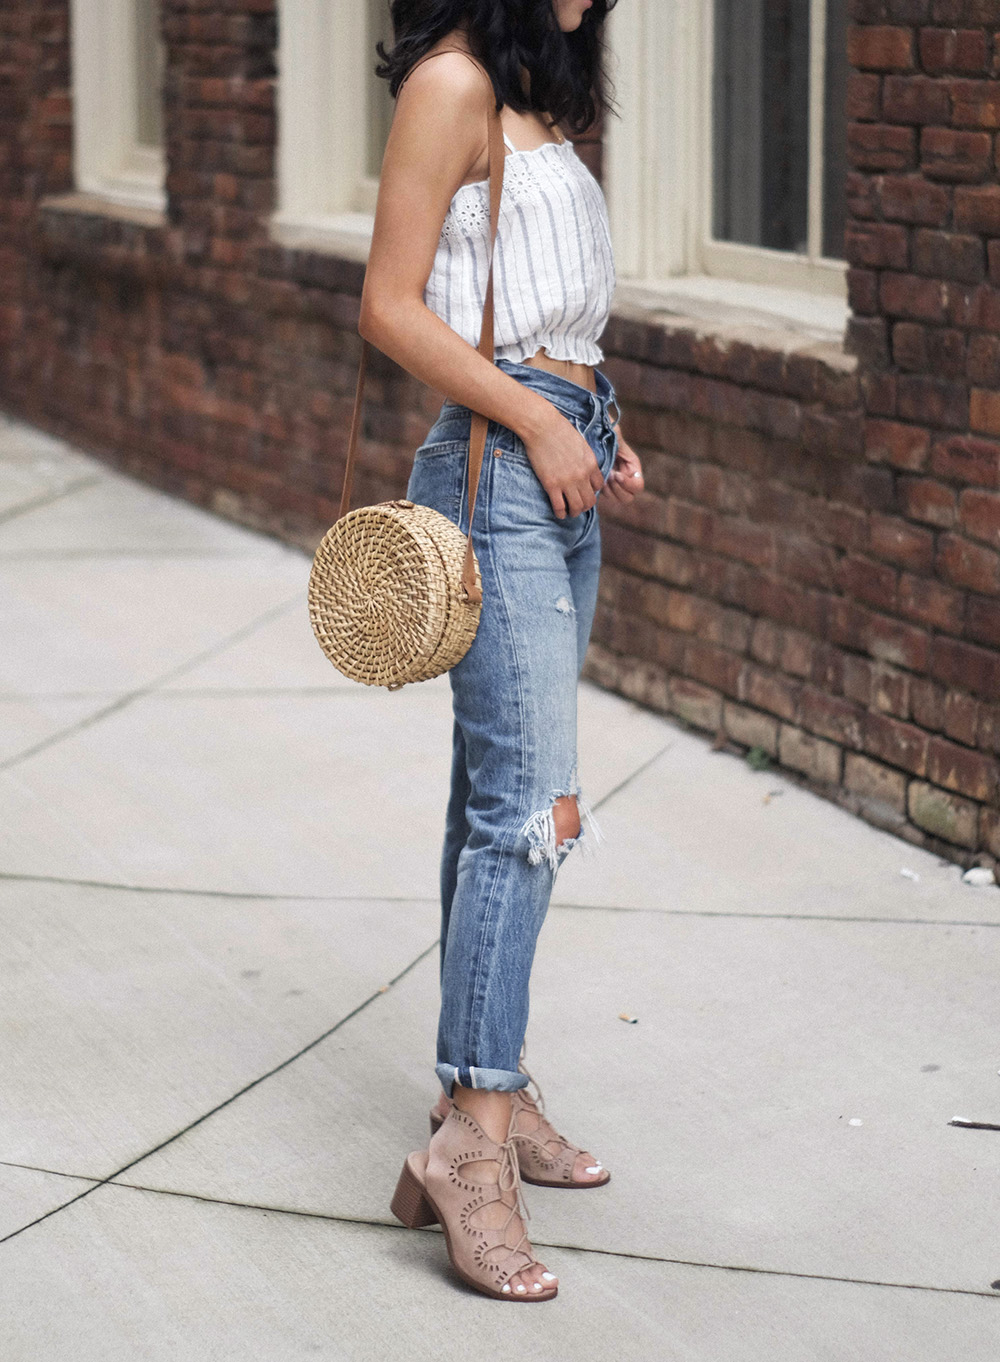 jeans summer outfit ideas | circle straw bag outfit | striped summer outfit cute